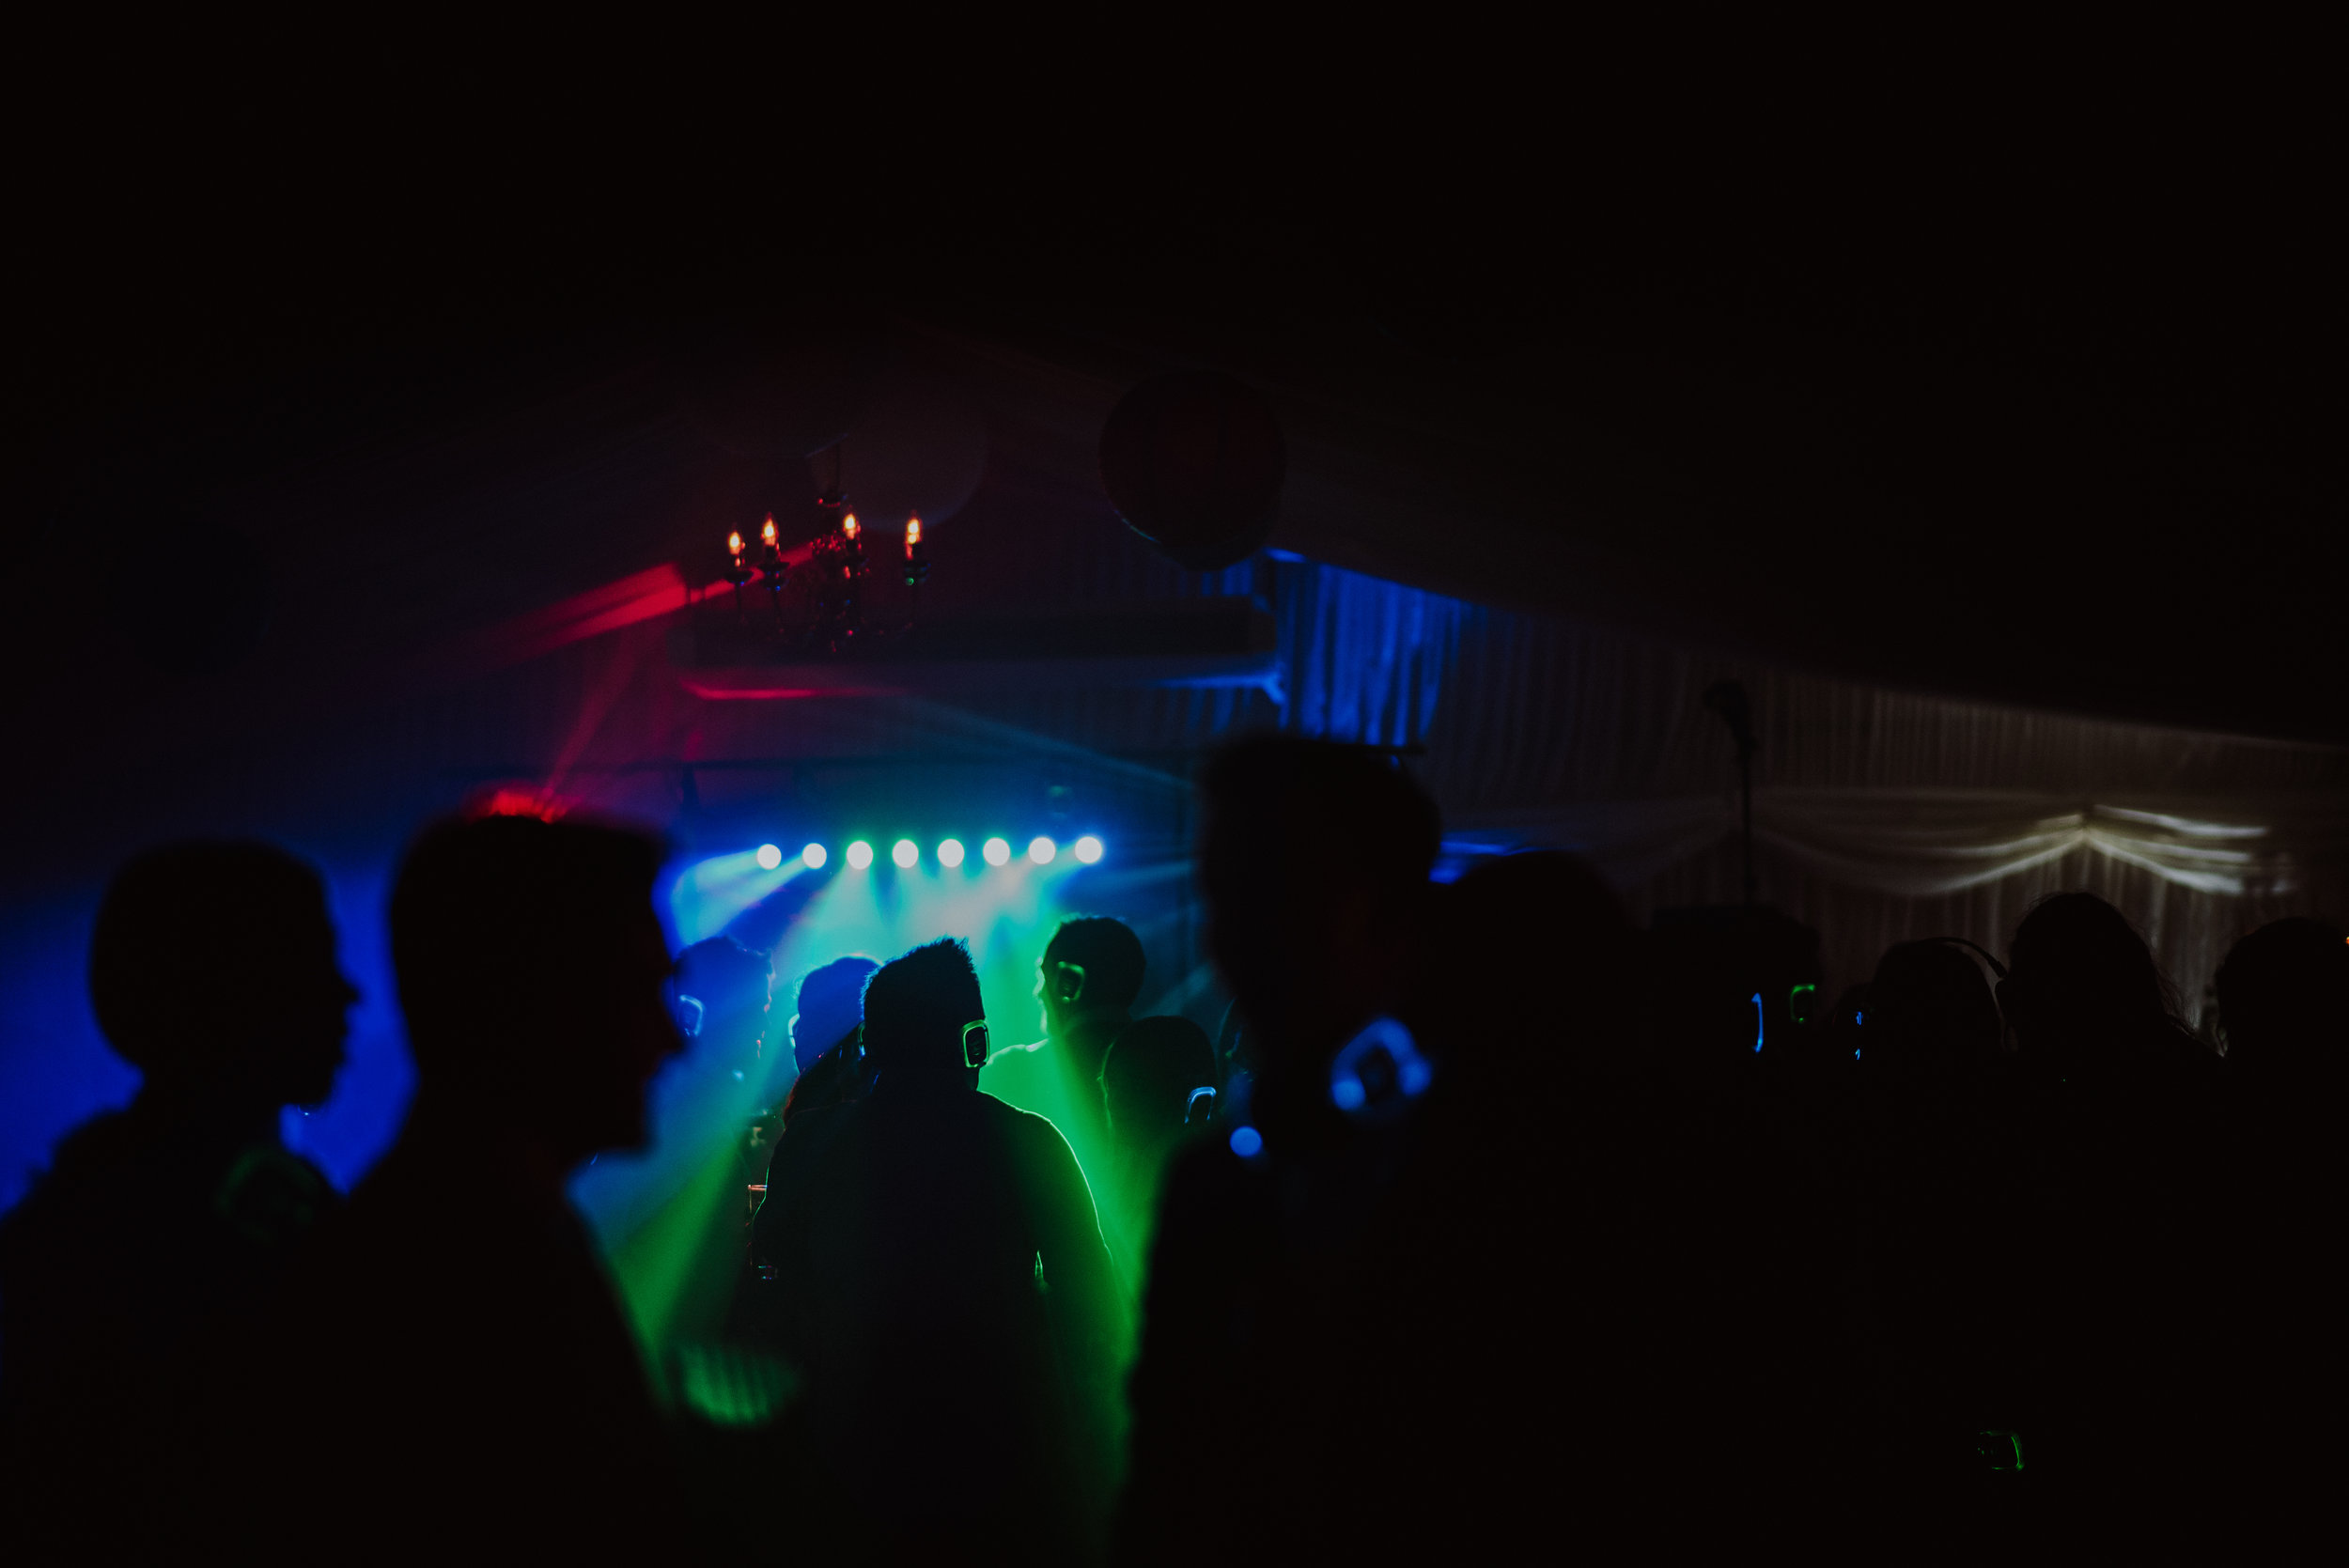 Silent-Disco-Cornwall-Wedding-8.jpg